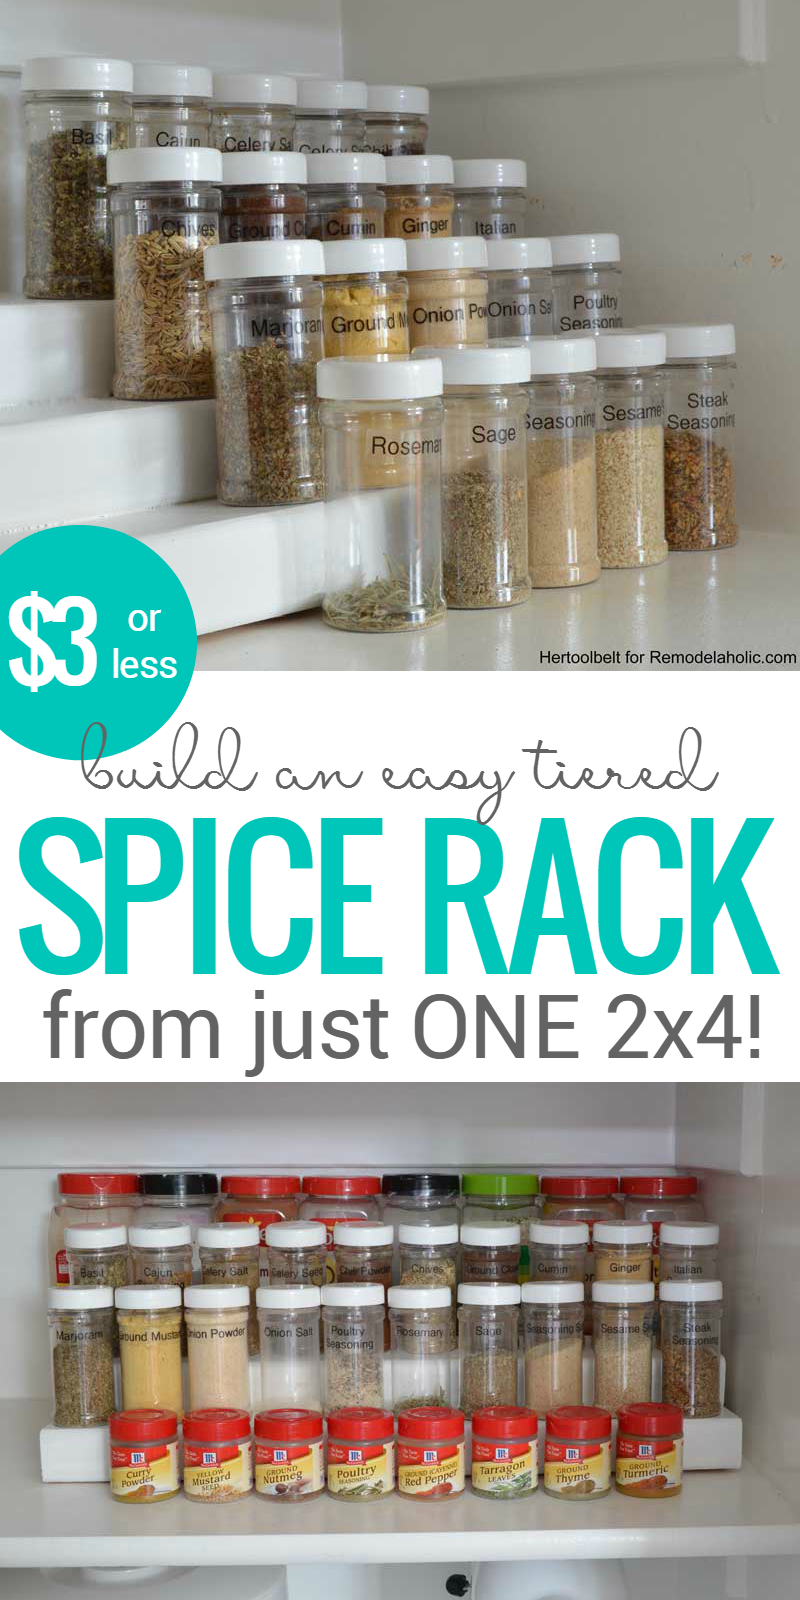 Tier Spice Rack Remodelaholic How To Build An Easy Tiered Spice Rack